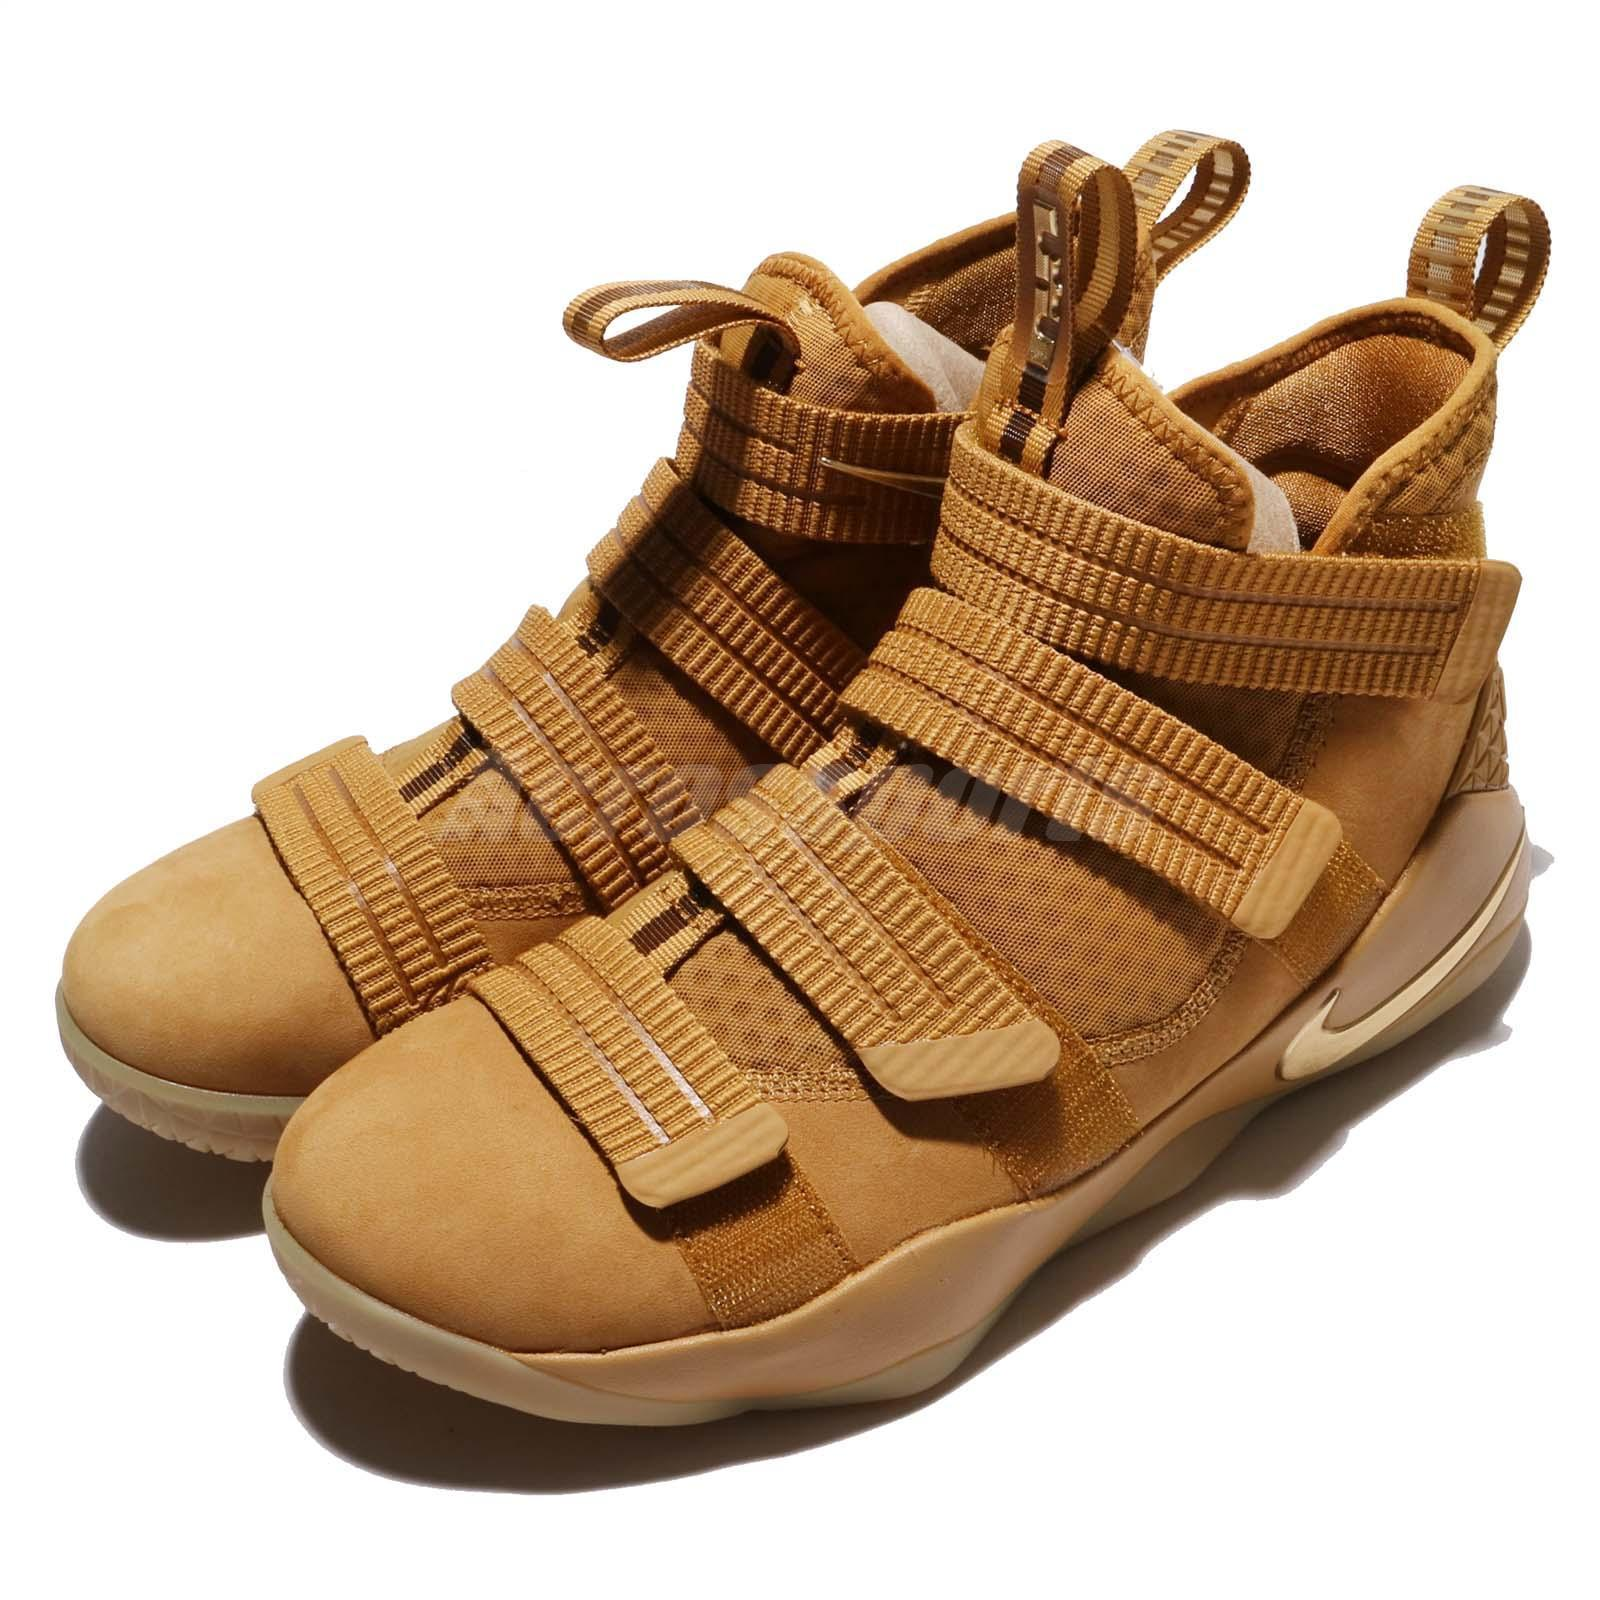 best service d39e0 bd59e There is a Wheat Nike LeBron Soldier 11 SFG Coming - WearTesters